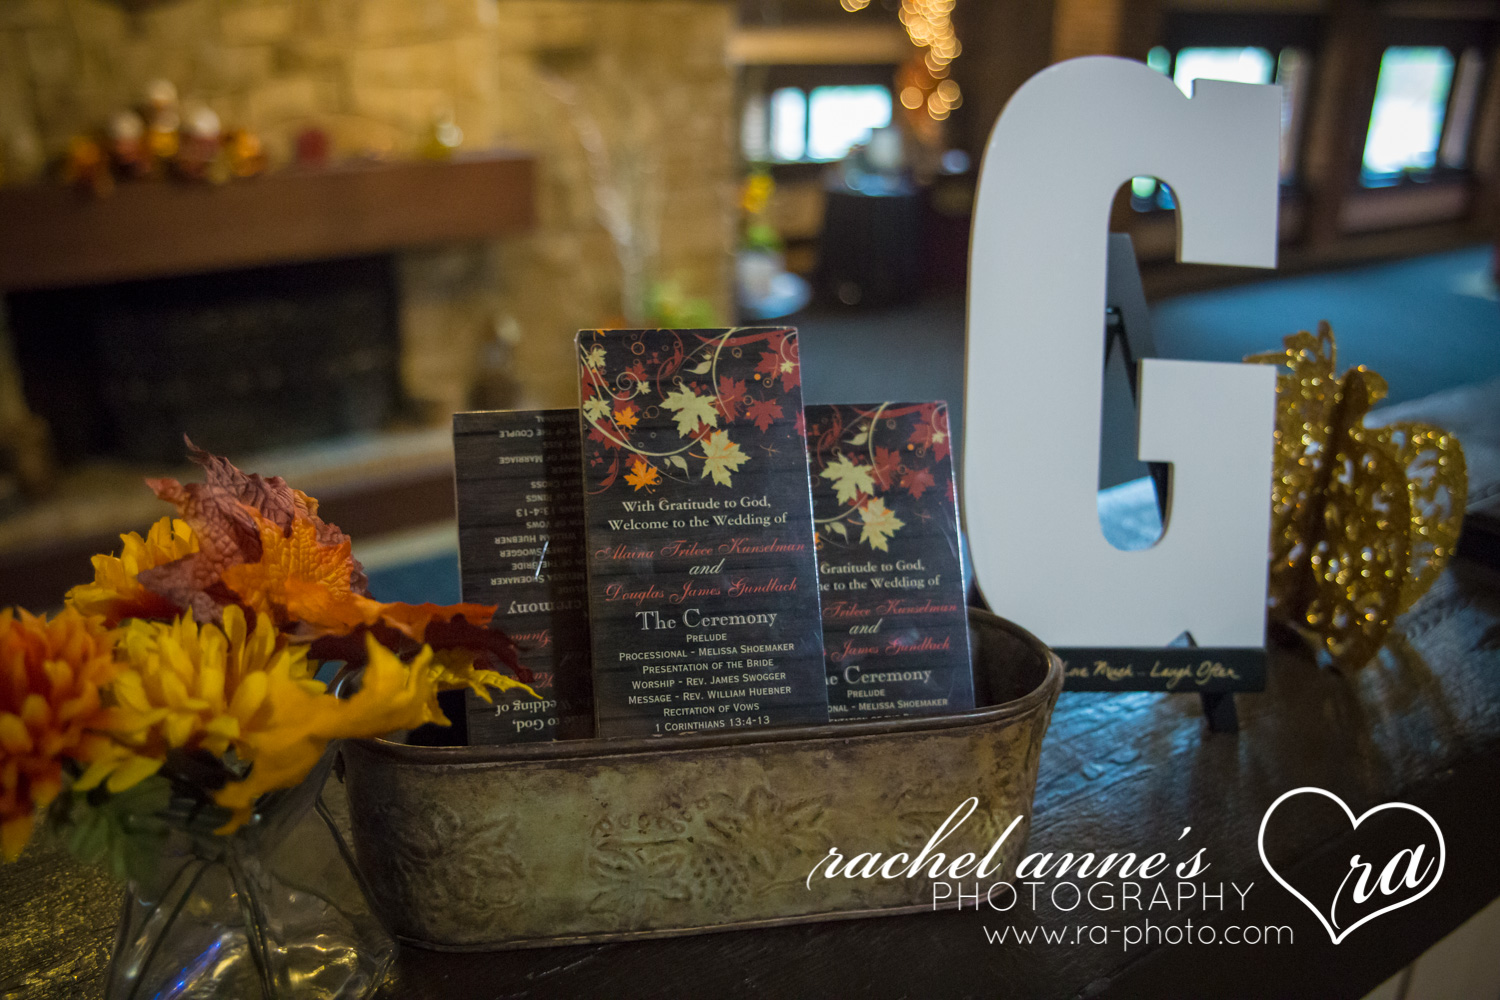 56-DAG-LAKEVIEW-LODGE-DUBOIS-PA-WEDDINGS.jpg